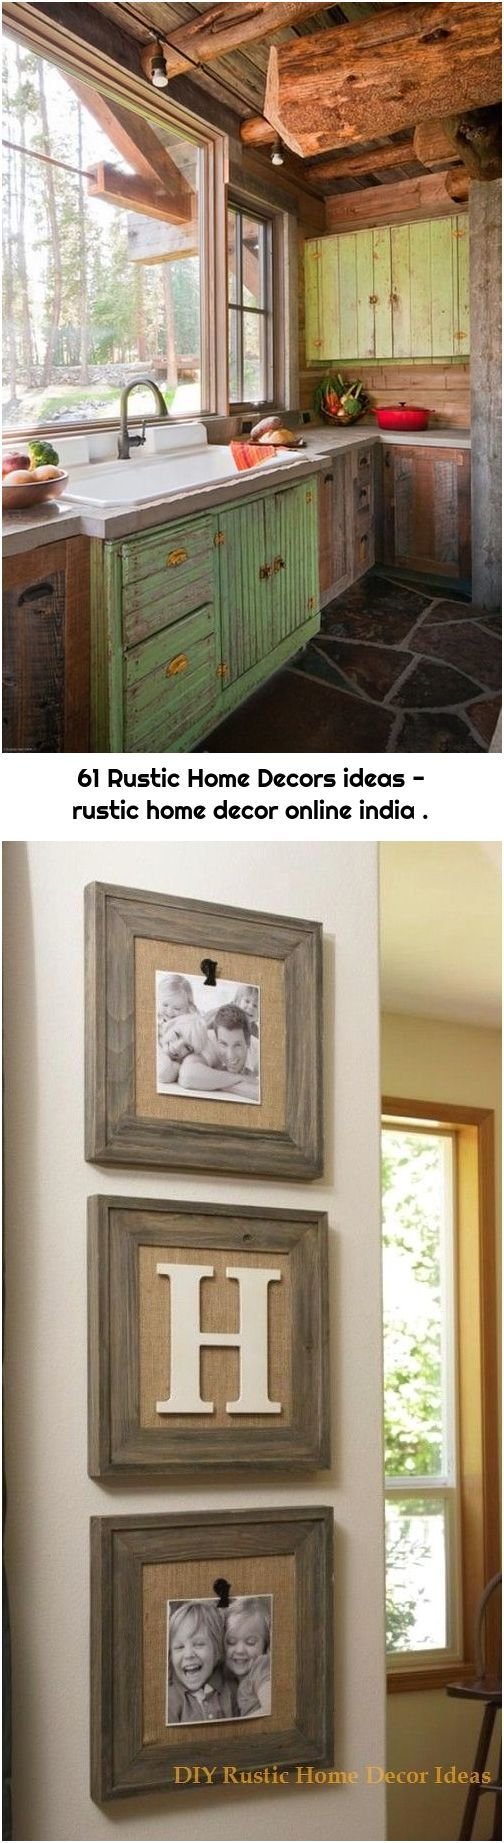 9 Rustic Home Decors ideas - rustic home decor online india . in